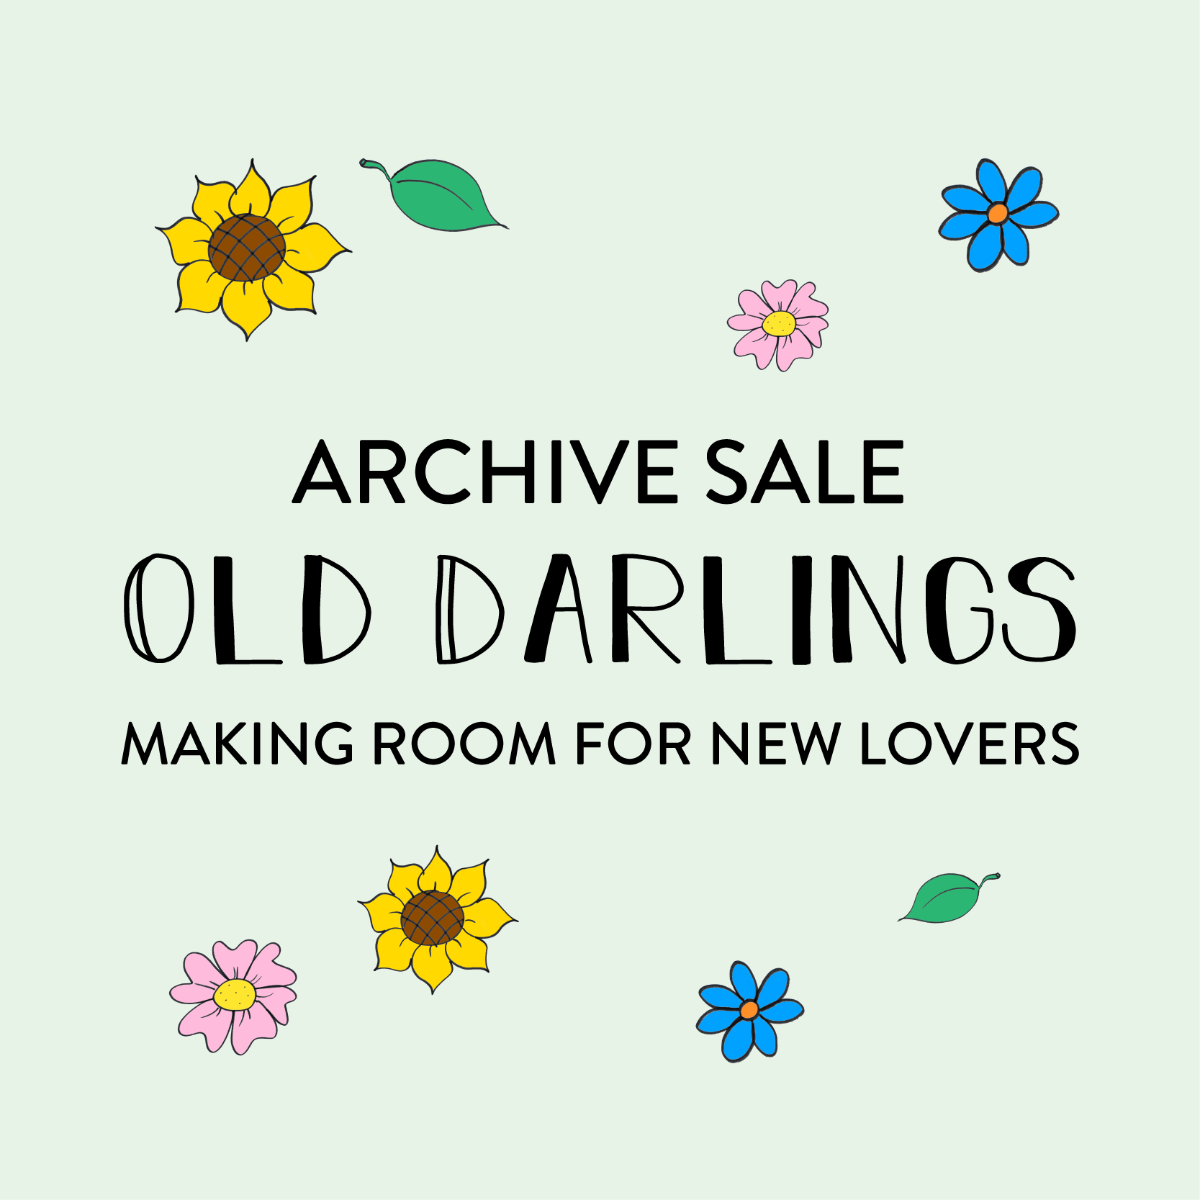 Old Darling Archive Sale